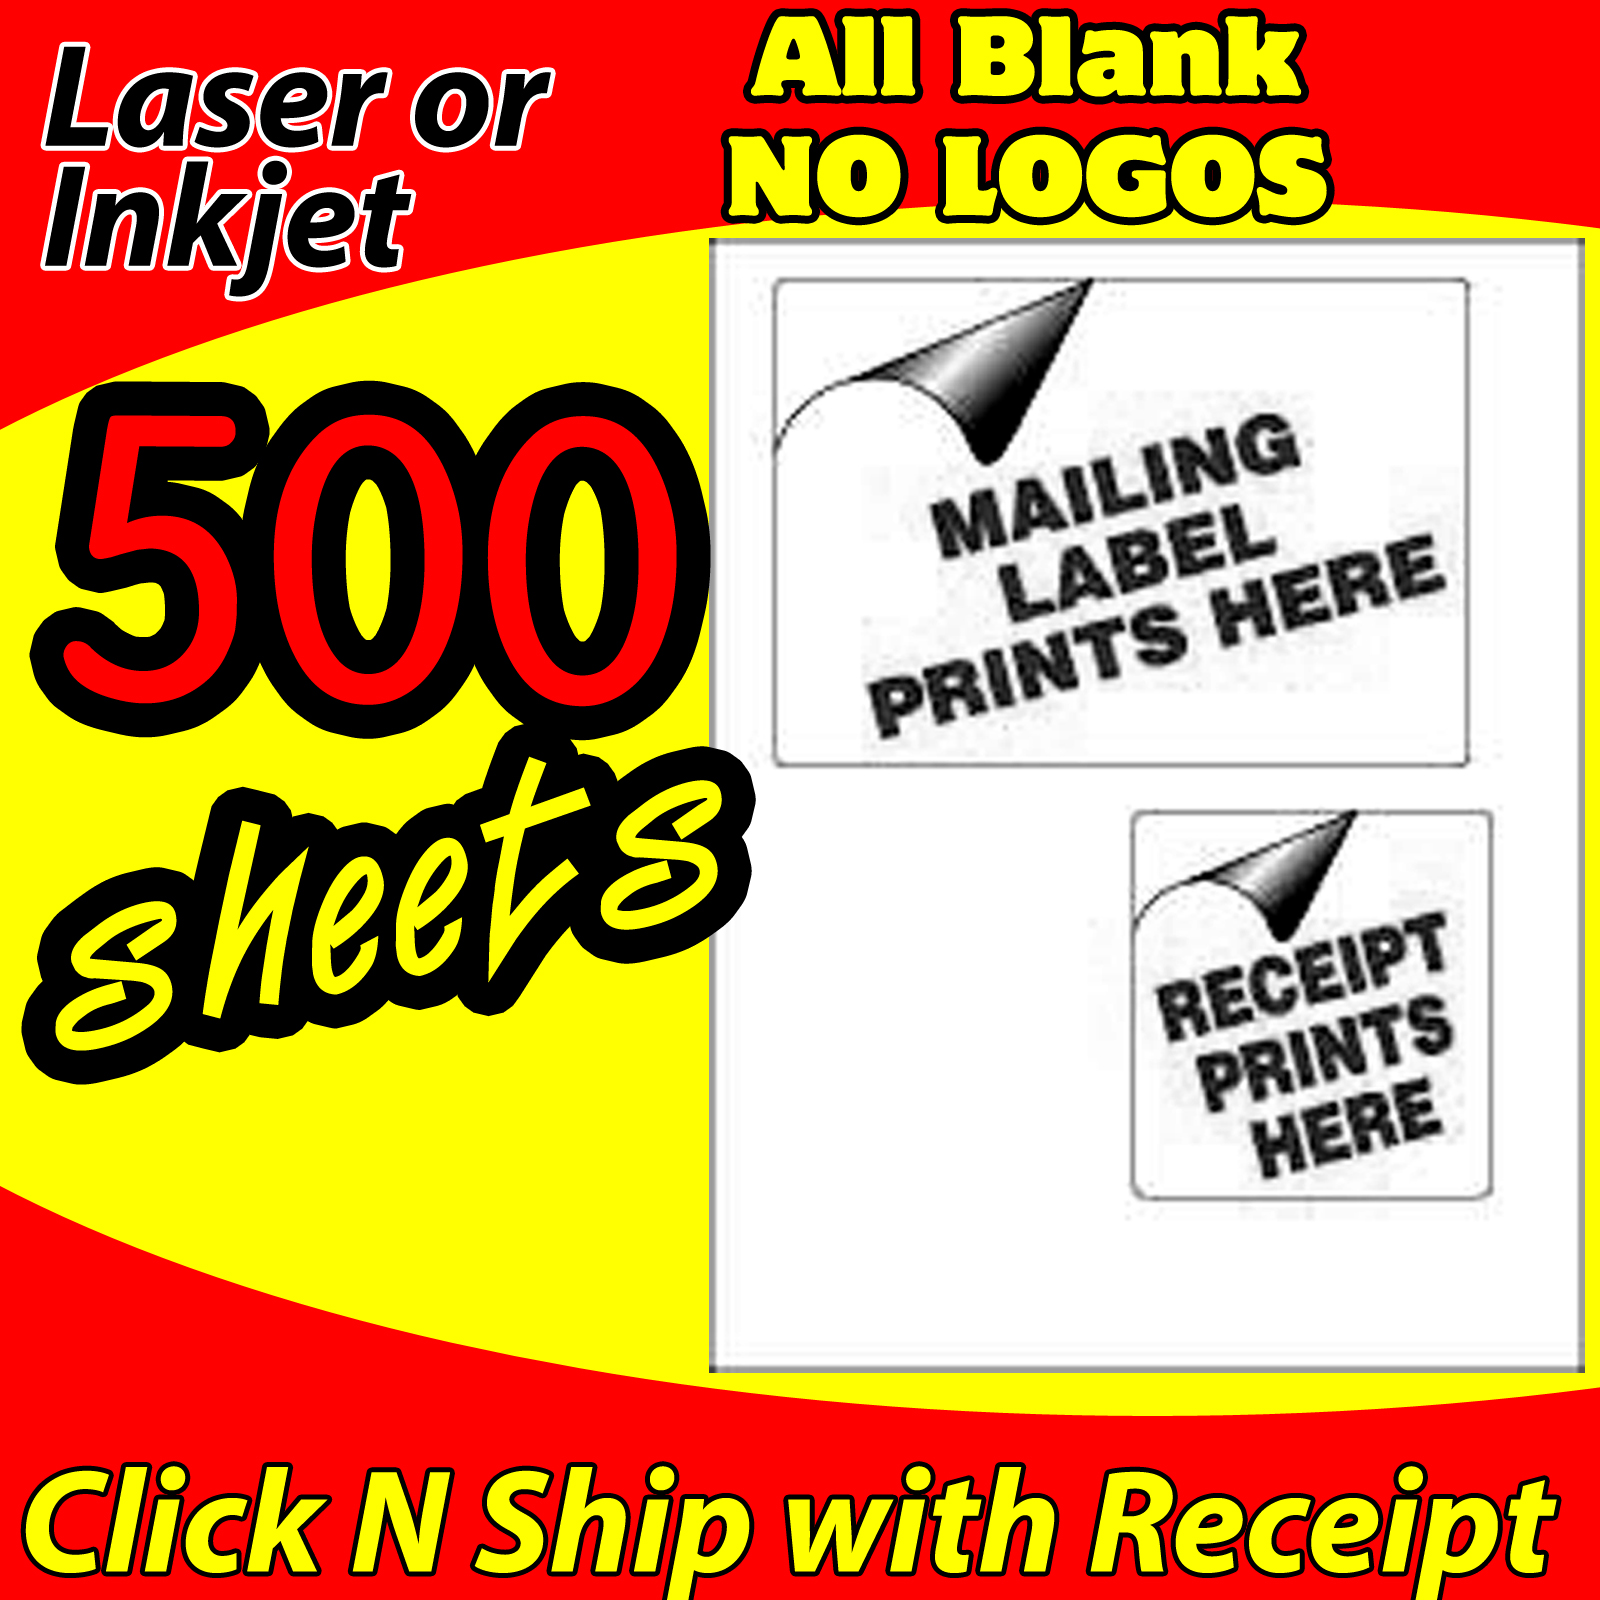 500 USPS CLICK-N-SHIP - PAYPAL - EBAY - SHIPPING LABELS